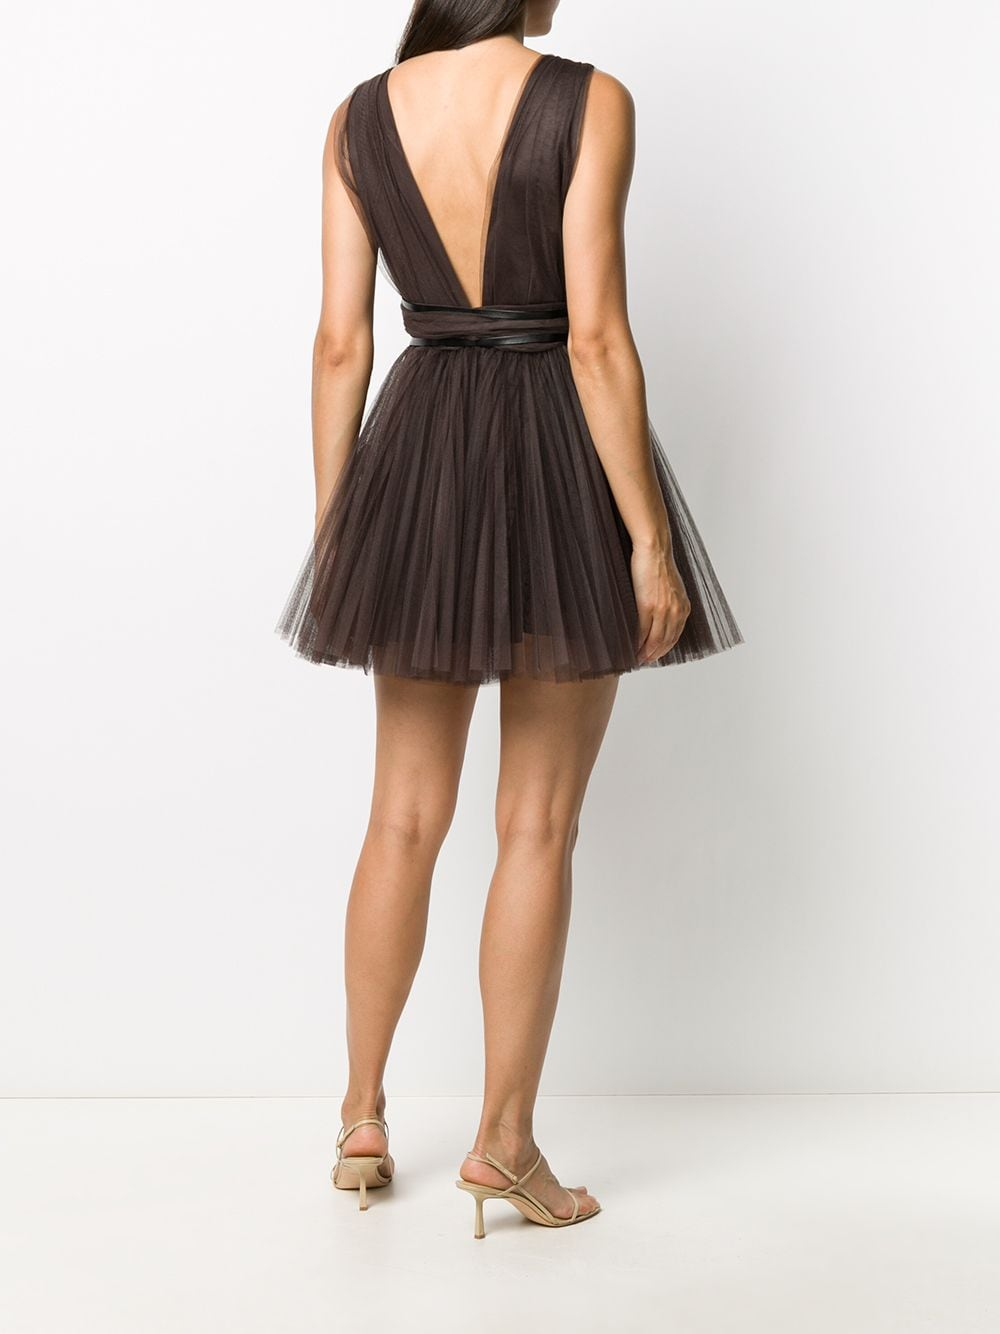 Dark brown mini dress featuring mesh panelling BROGNANO |  | 29BR1A11-20475130